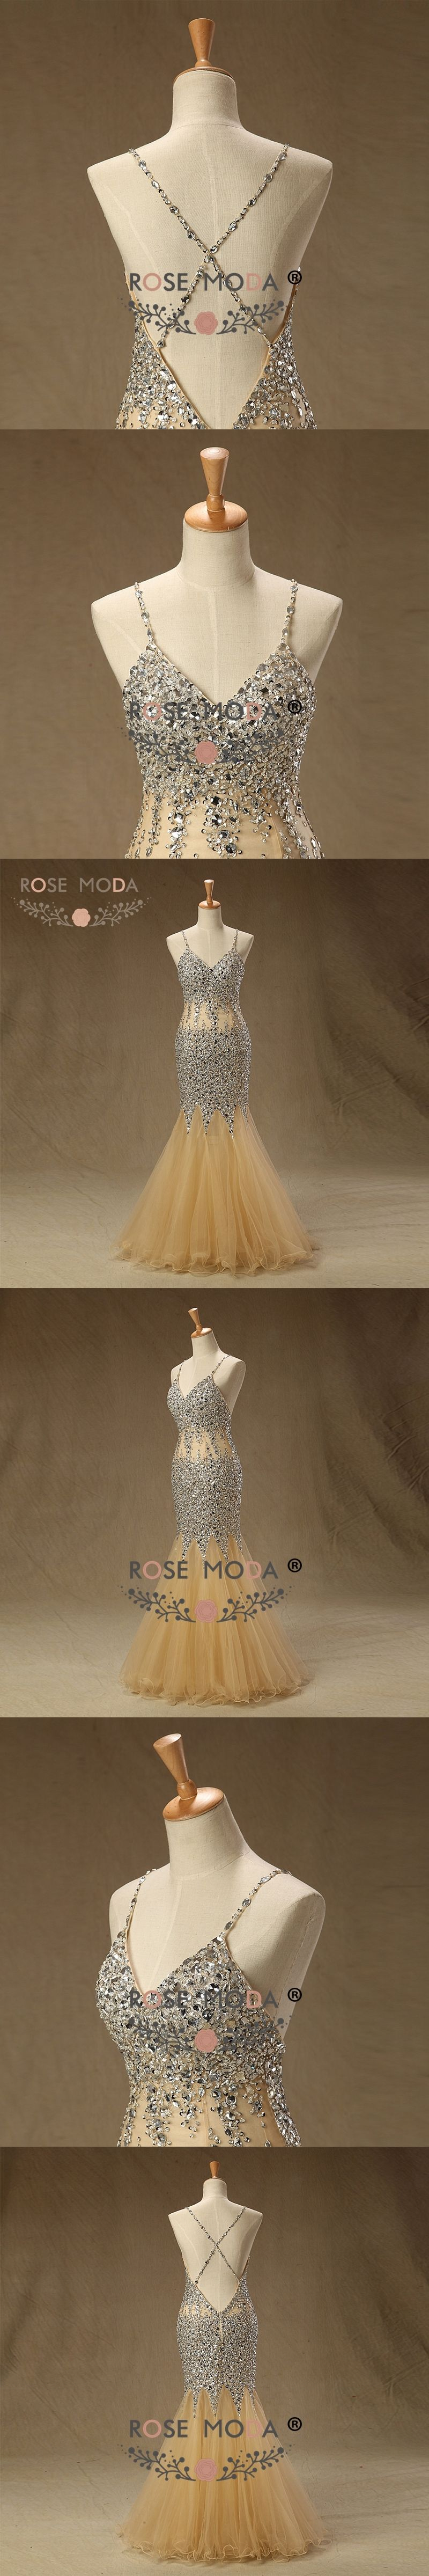 Rose moda gold prom dress see through crystal beaded mermaid prom